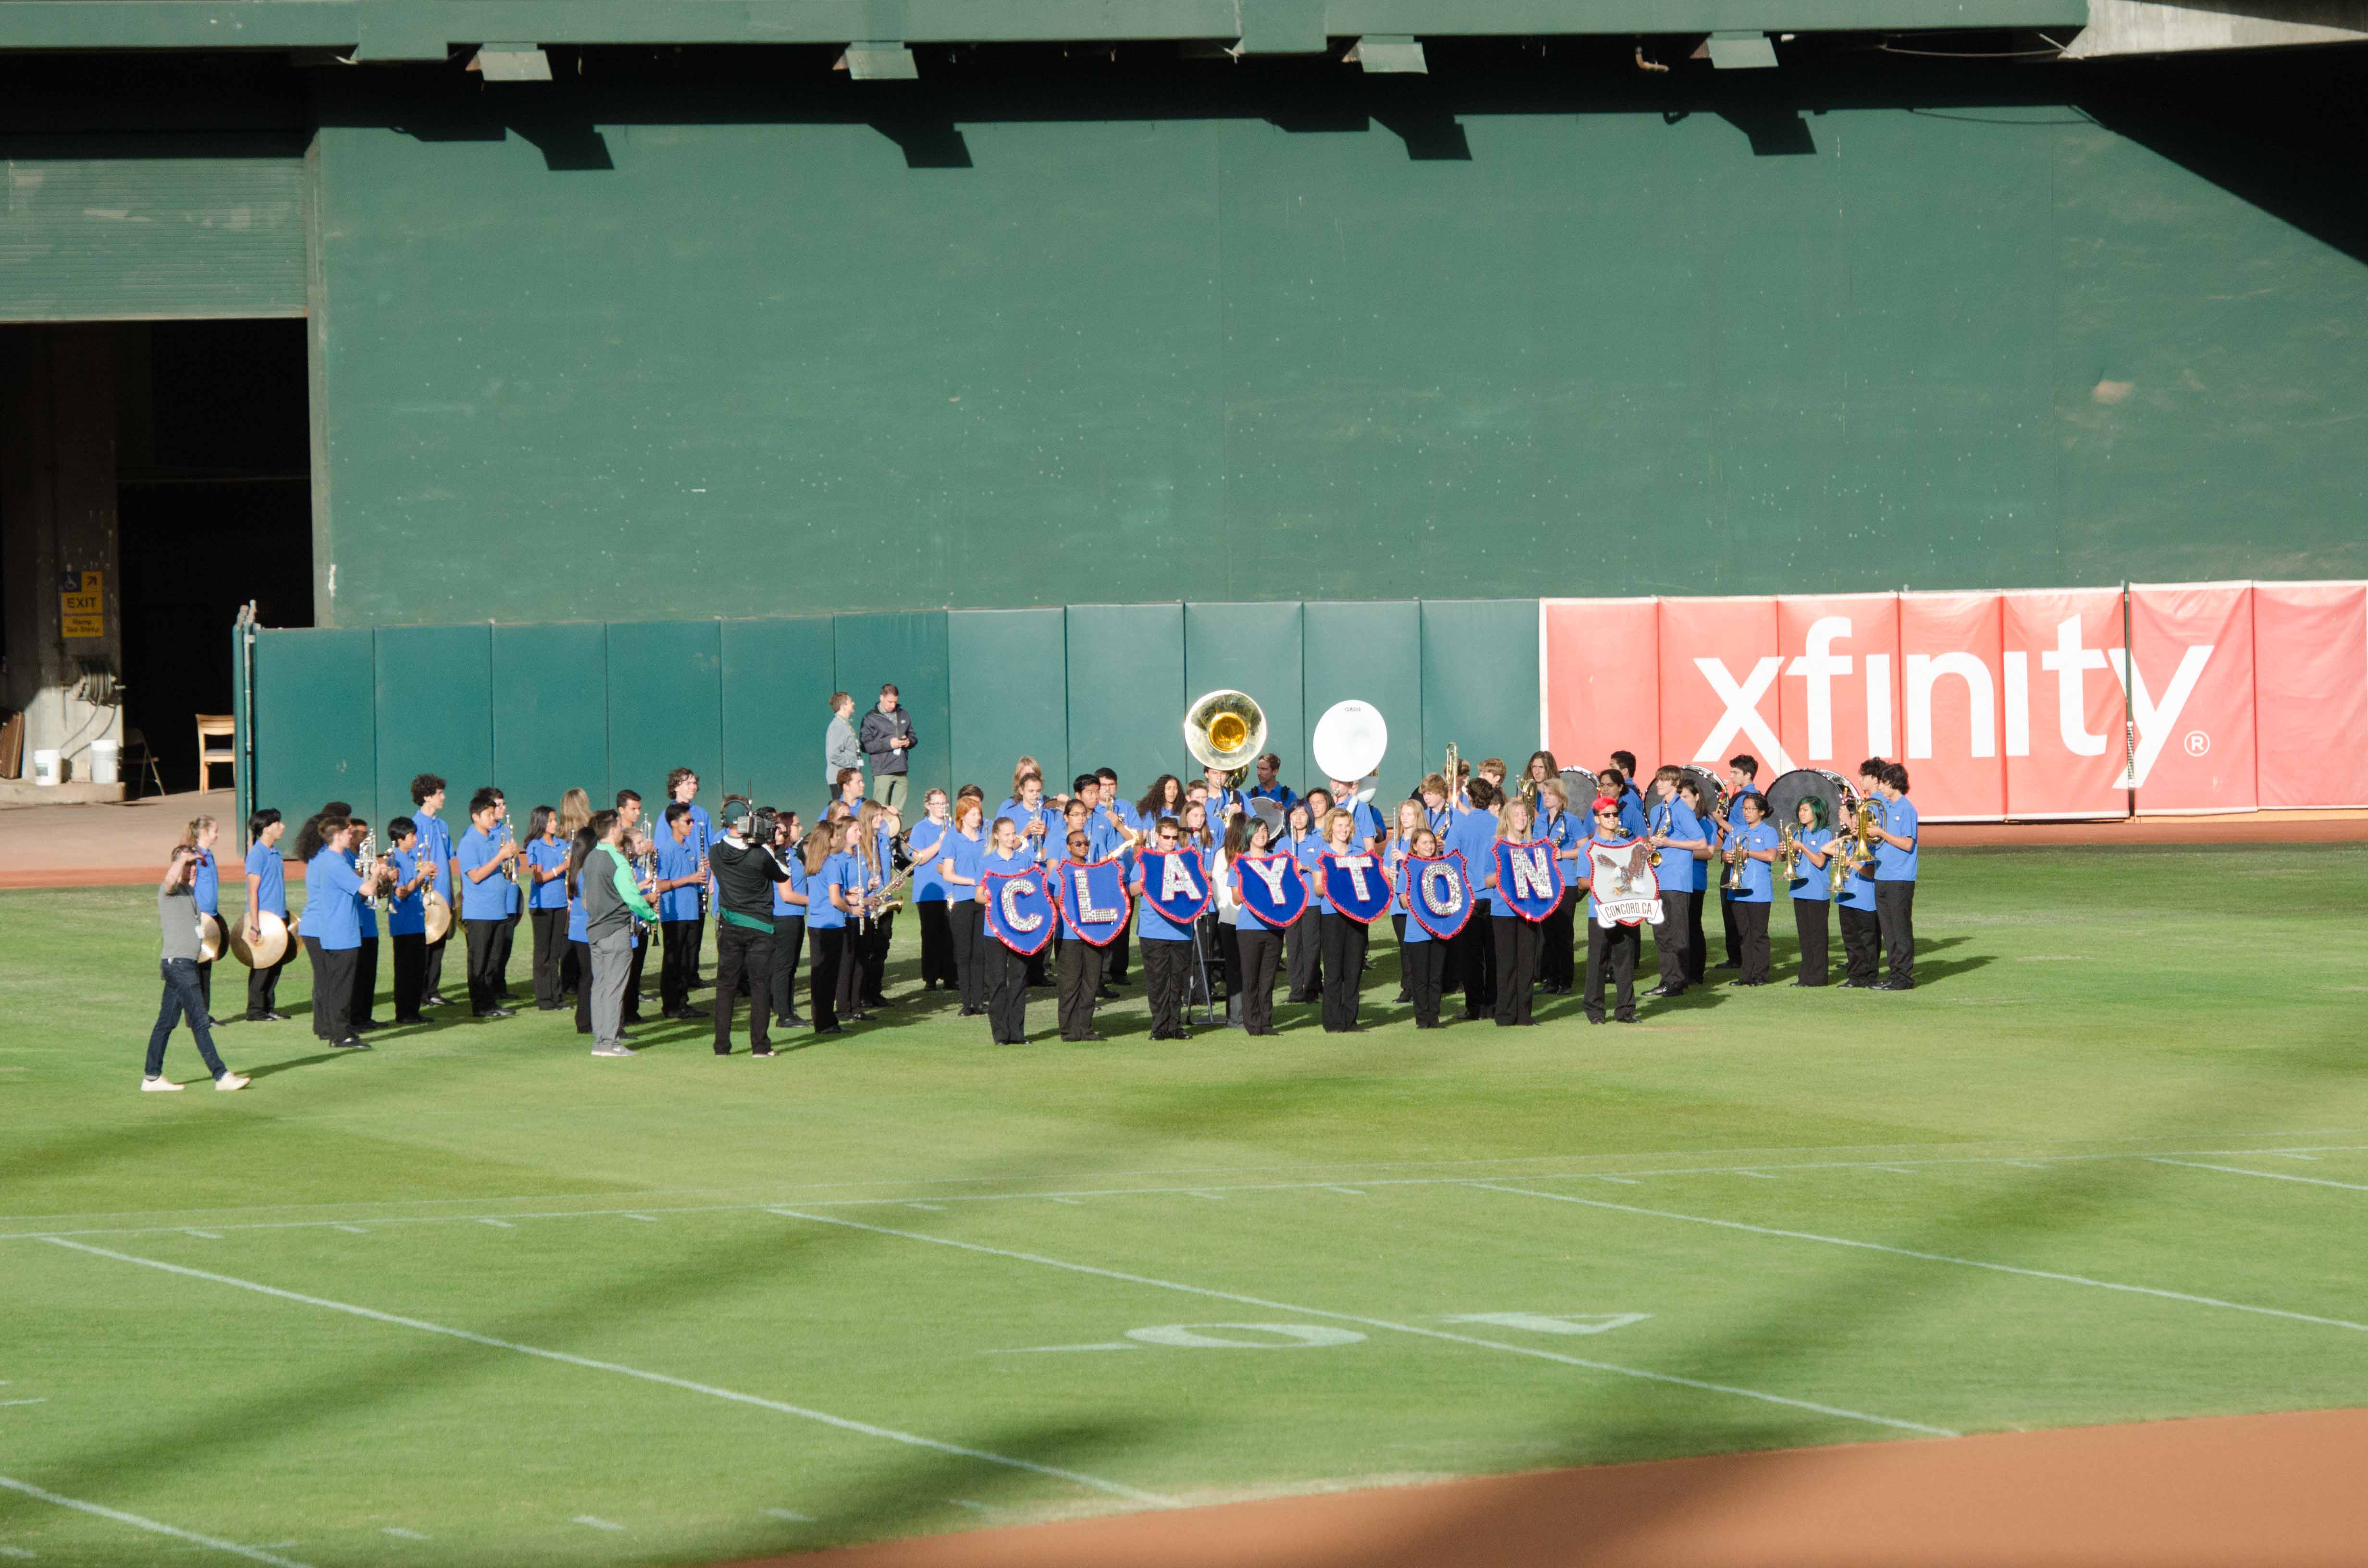 A's Game 9-3-16-18